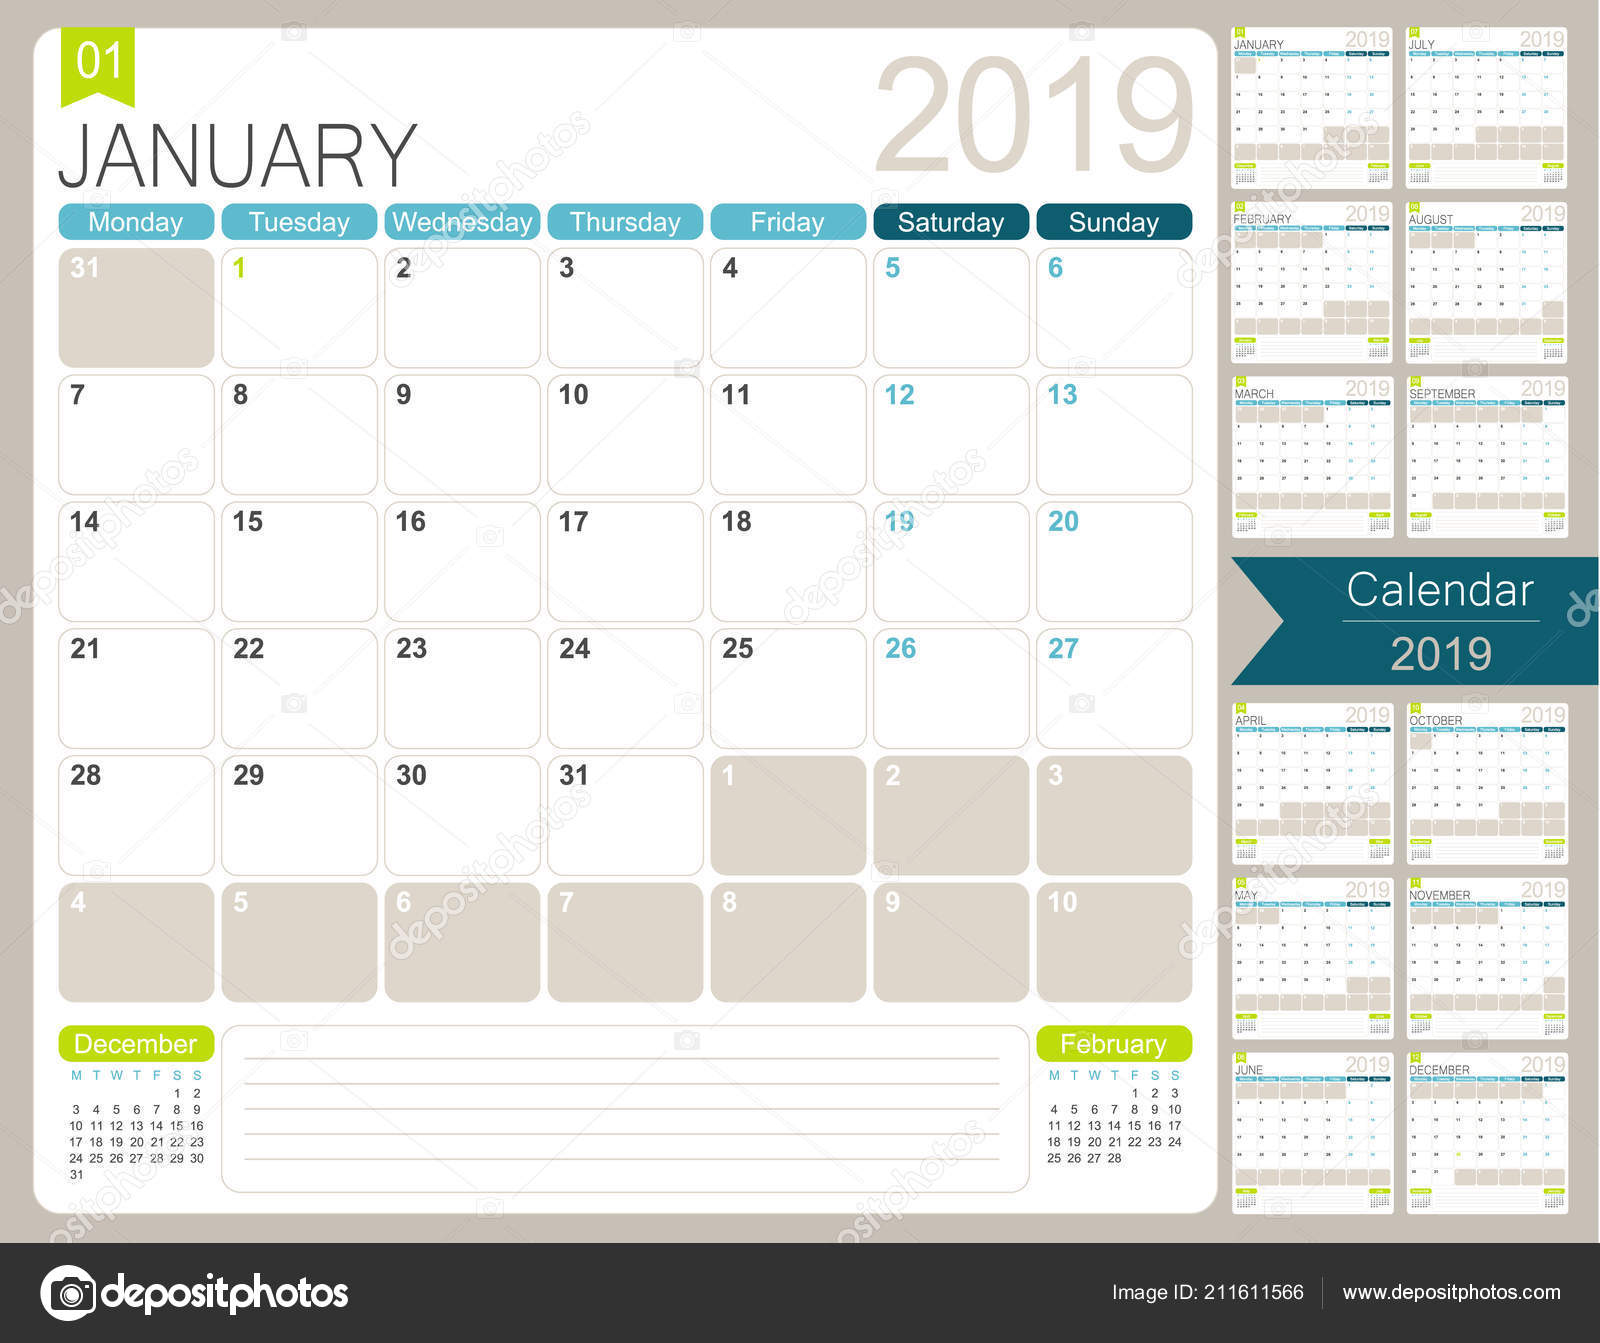 English Calendar Planner 2019 Week Starts Monday Set Months January